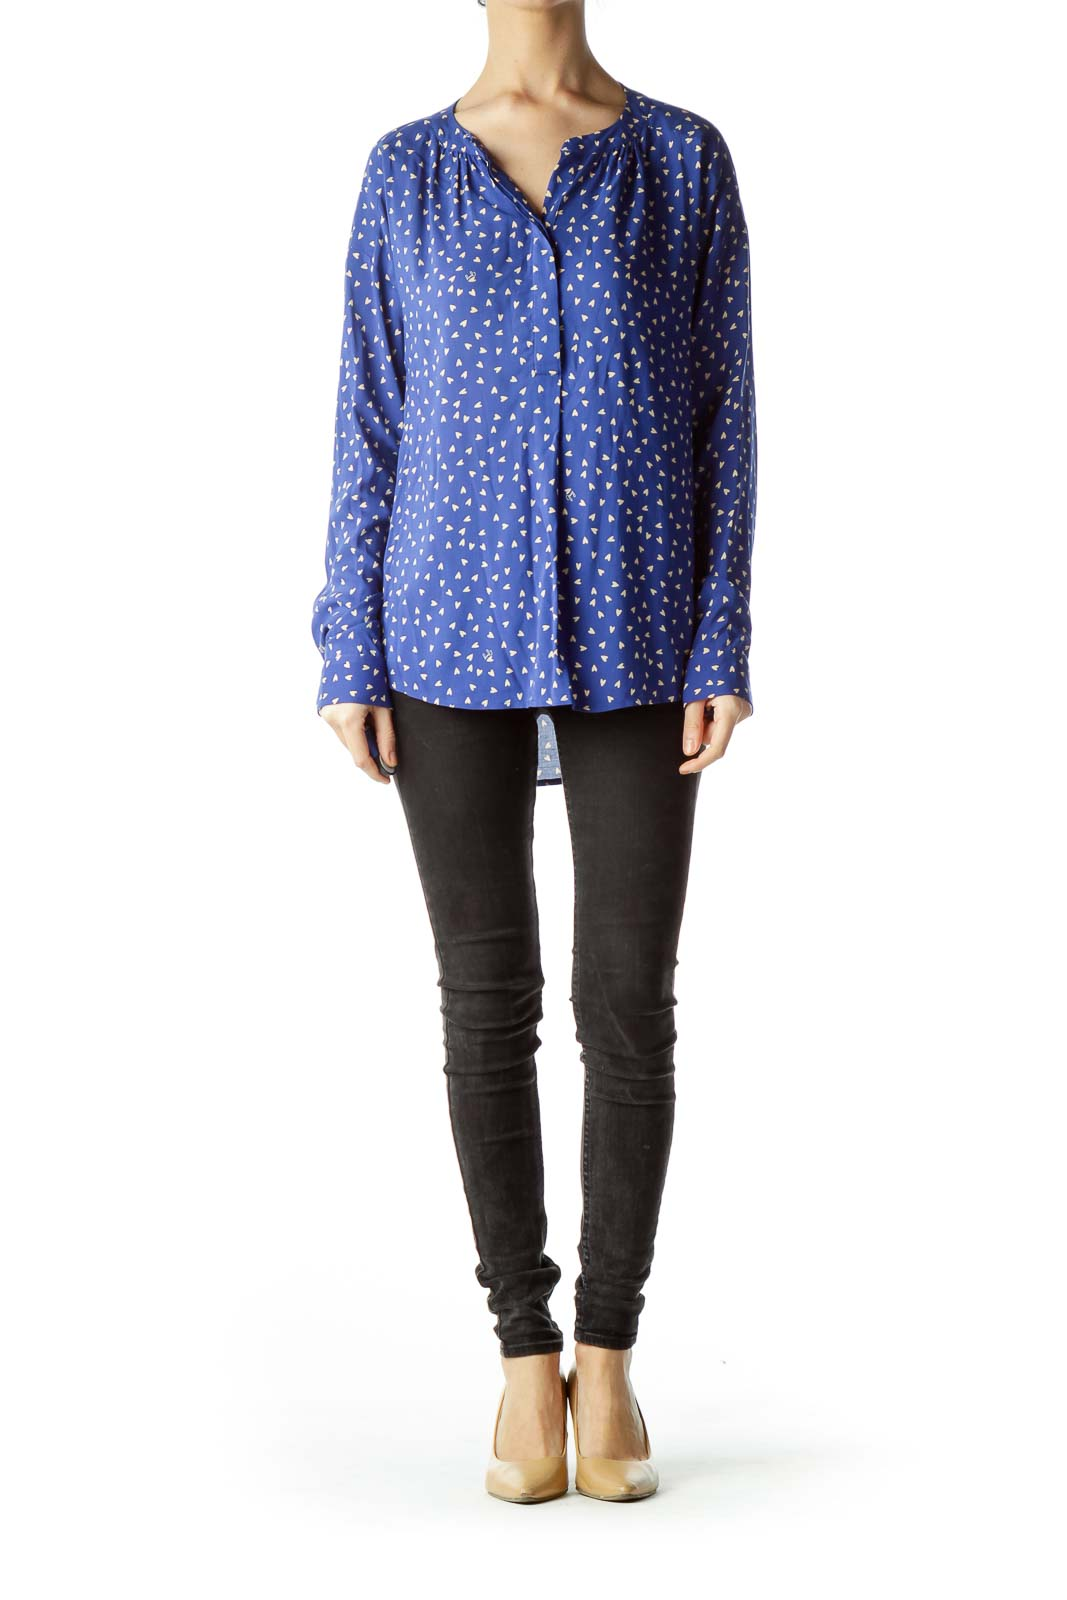 Blue Small Hearts Printed Long-Sleeve Blouse